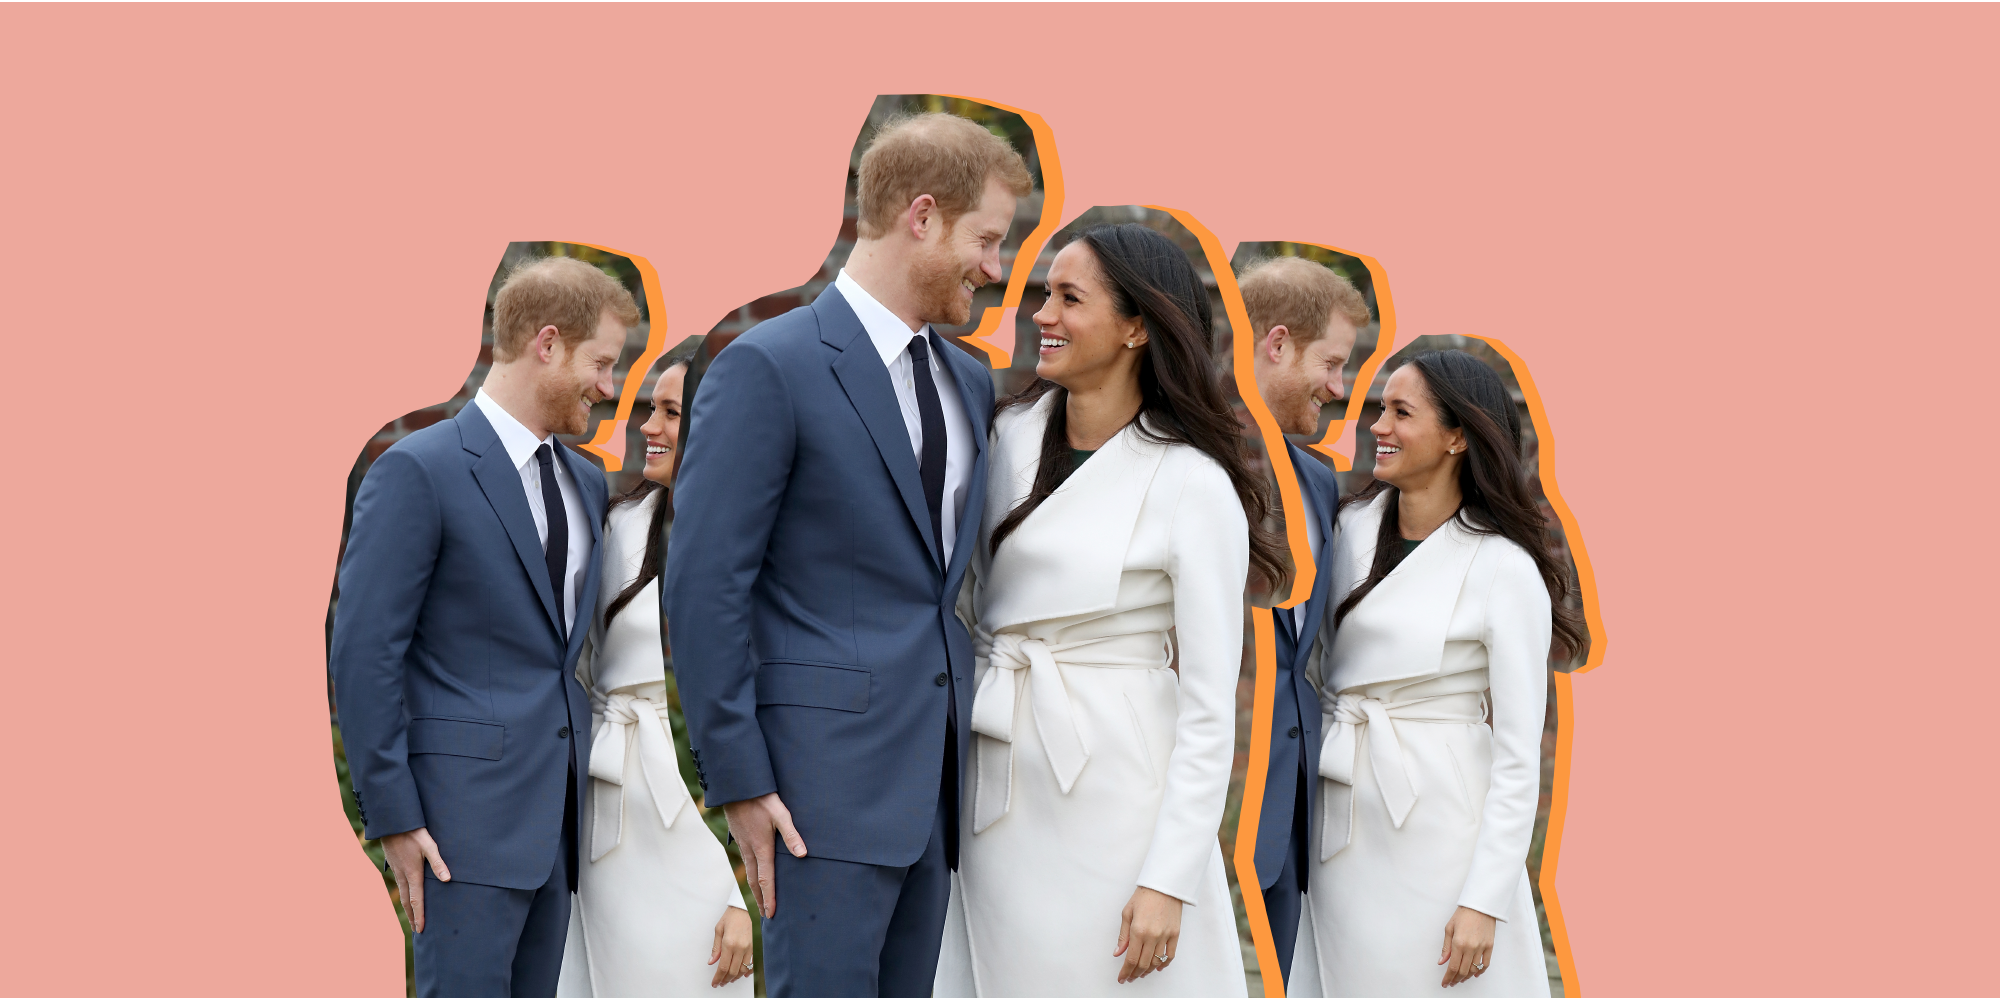 meghan-markle-en-prins-harry-op-instagram